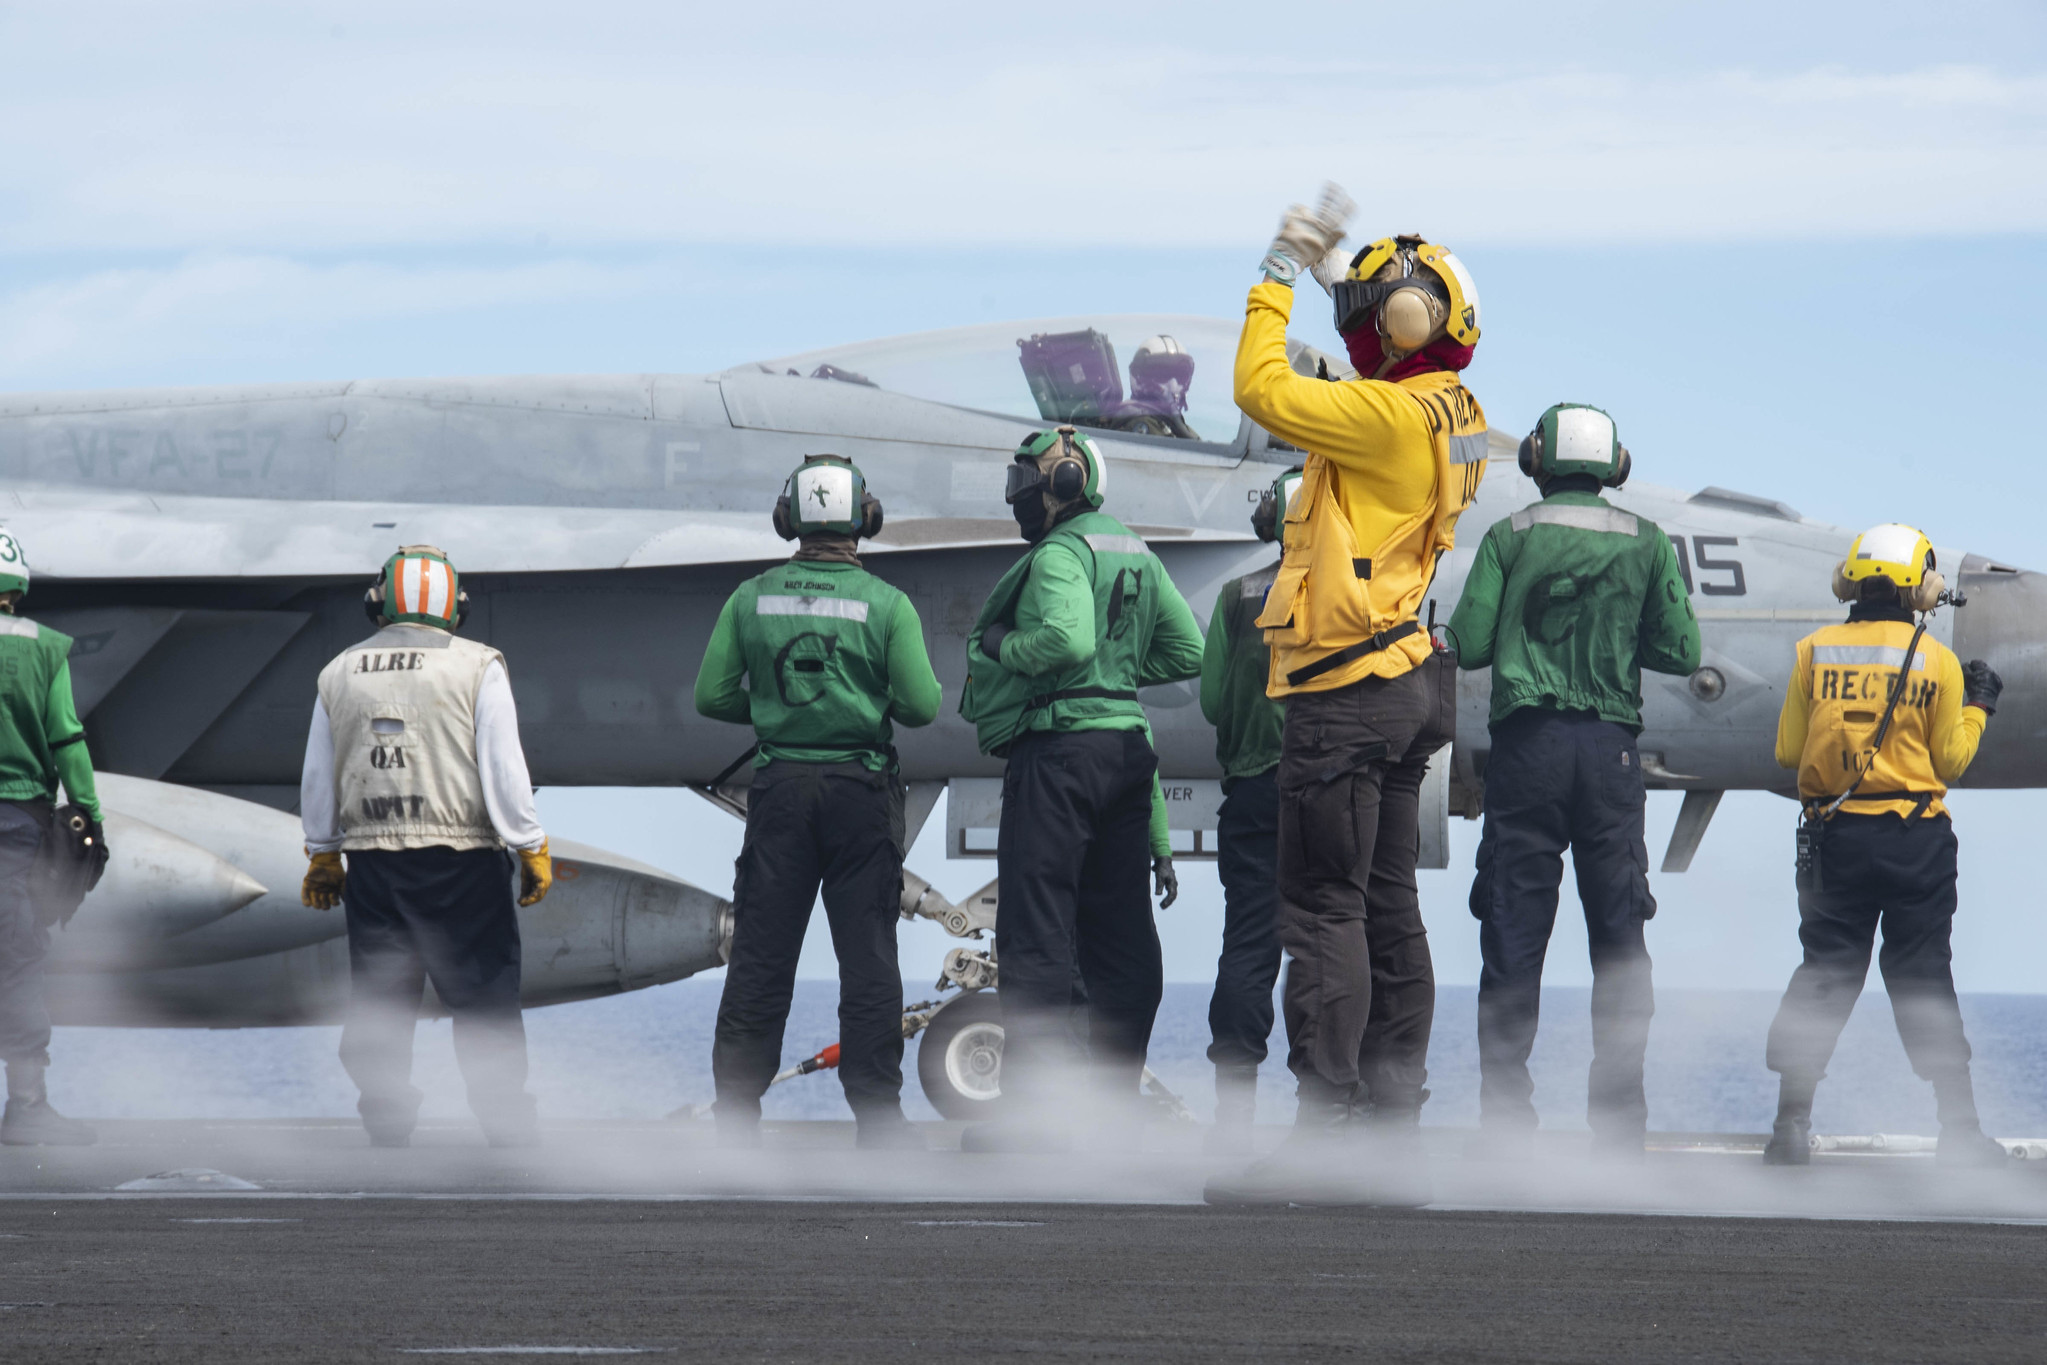 Sailors prepare to launch an F/A-18E Super Hornet on the flight deck of the aircraft carrier USS Ronald Reagan (CVN 76) on June 18, 2020, during flight operations in the Philippine Sea. (MC3 Erica Bechard/Navy)